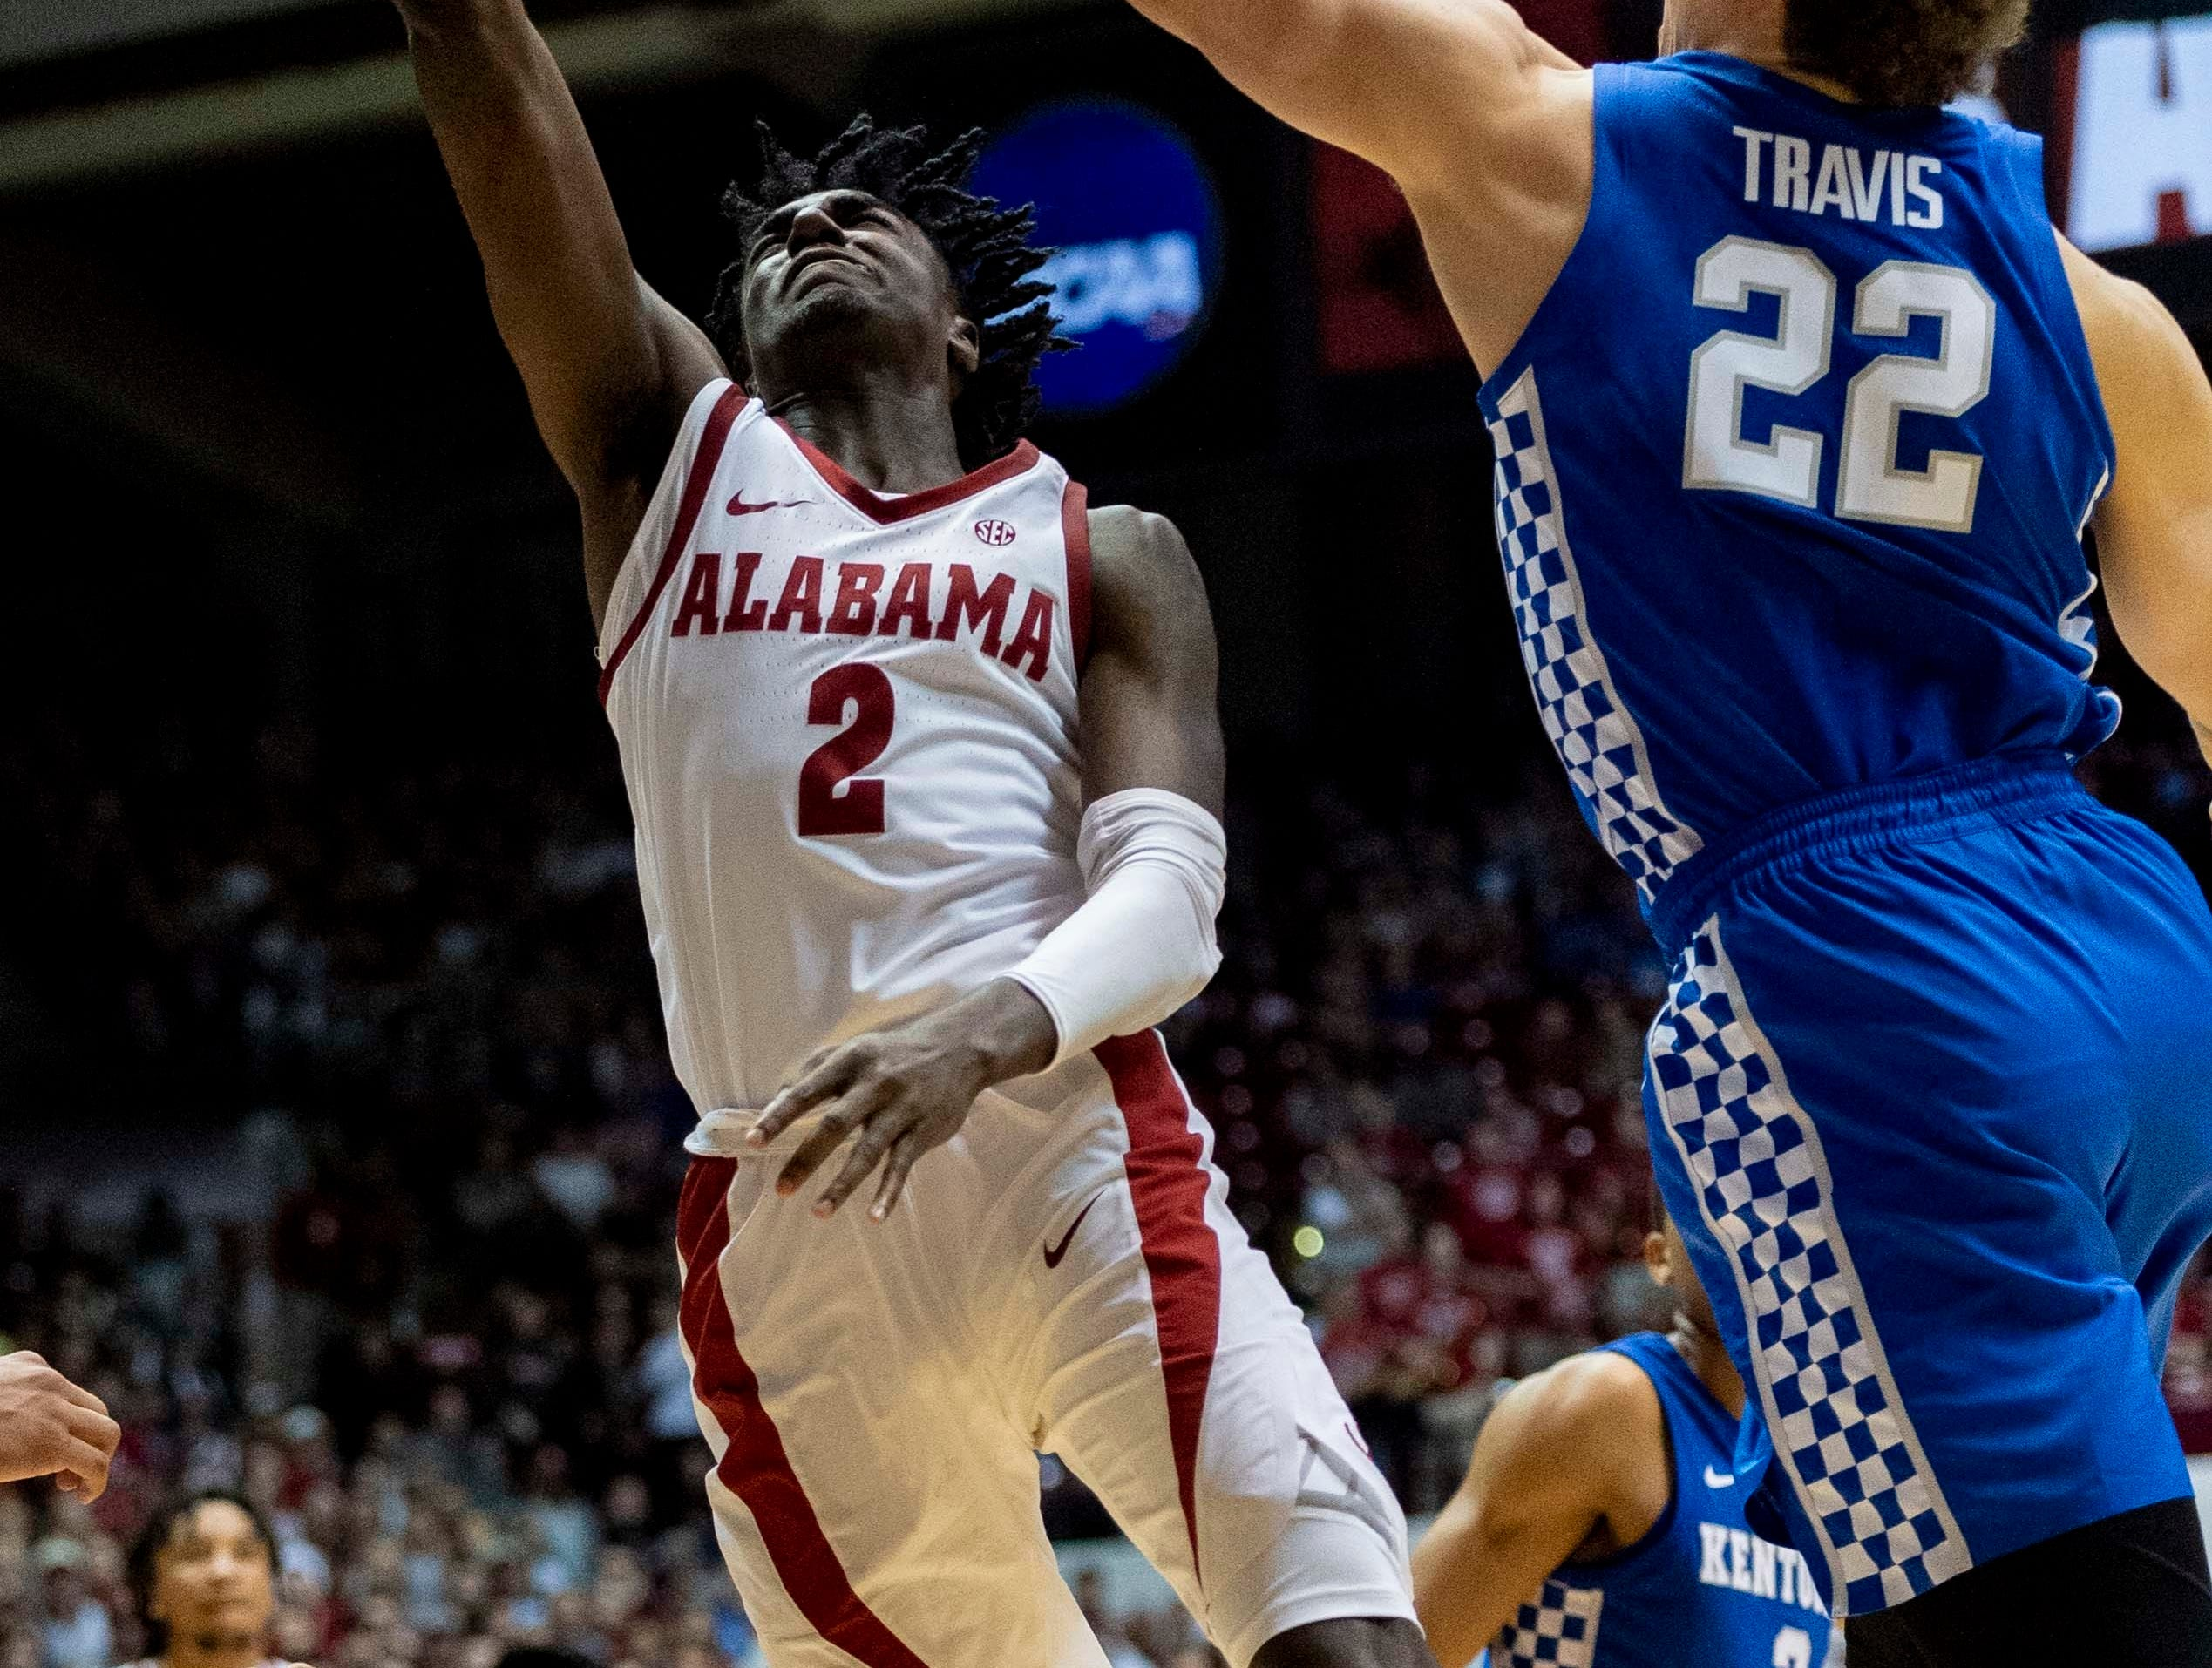 Alabama guard Kira Lewis Jr. (2) shoots past Kentucky forward Reid Travis (22) during the second half of an NCAA college basketball game, Saturday, Jan. 5, 2019, in Tuscaloosa, Ala.